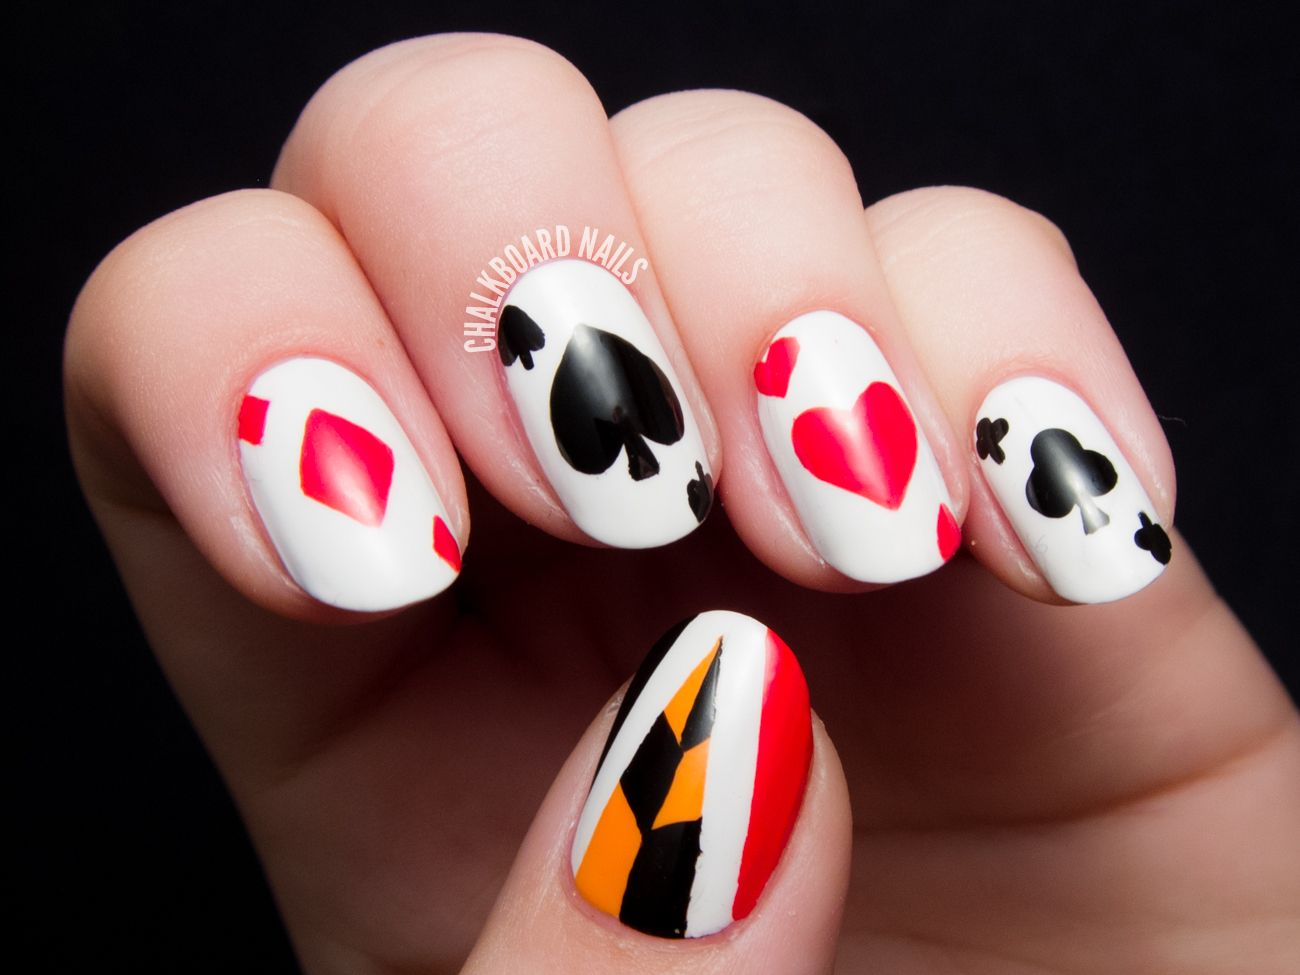 Off with their heads queen of hearts nail art queen of hearts queen of hearts nail art prinsesfo Images